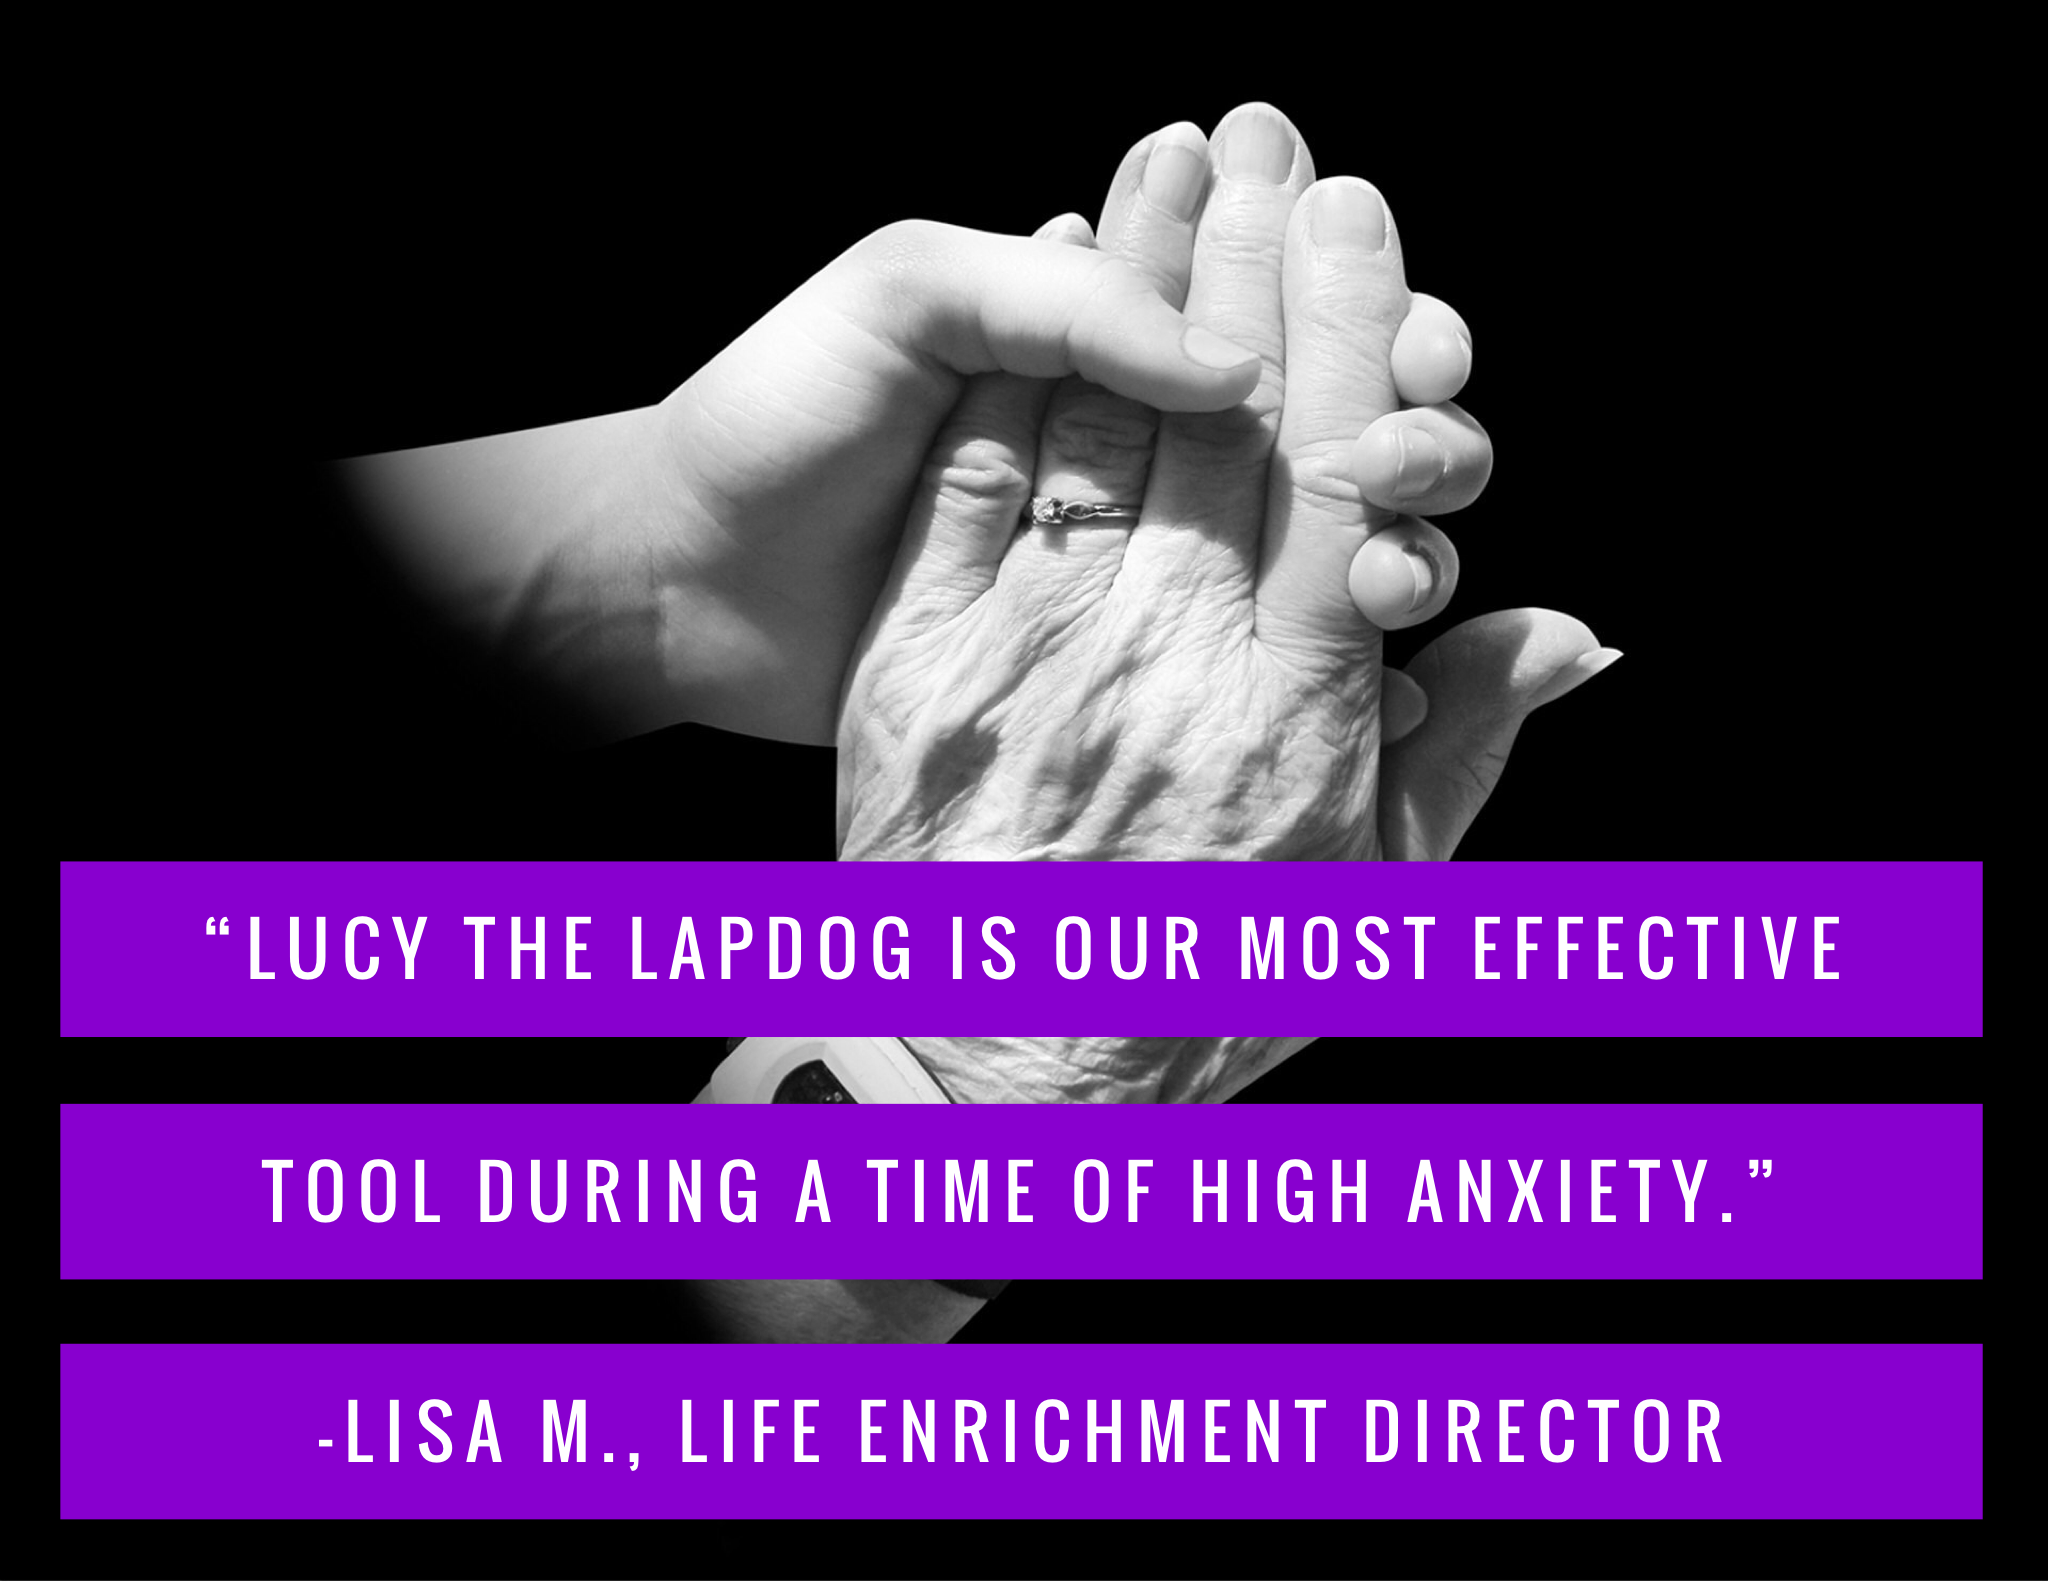 Quote: Lucy the lapdog is the most effective tool